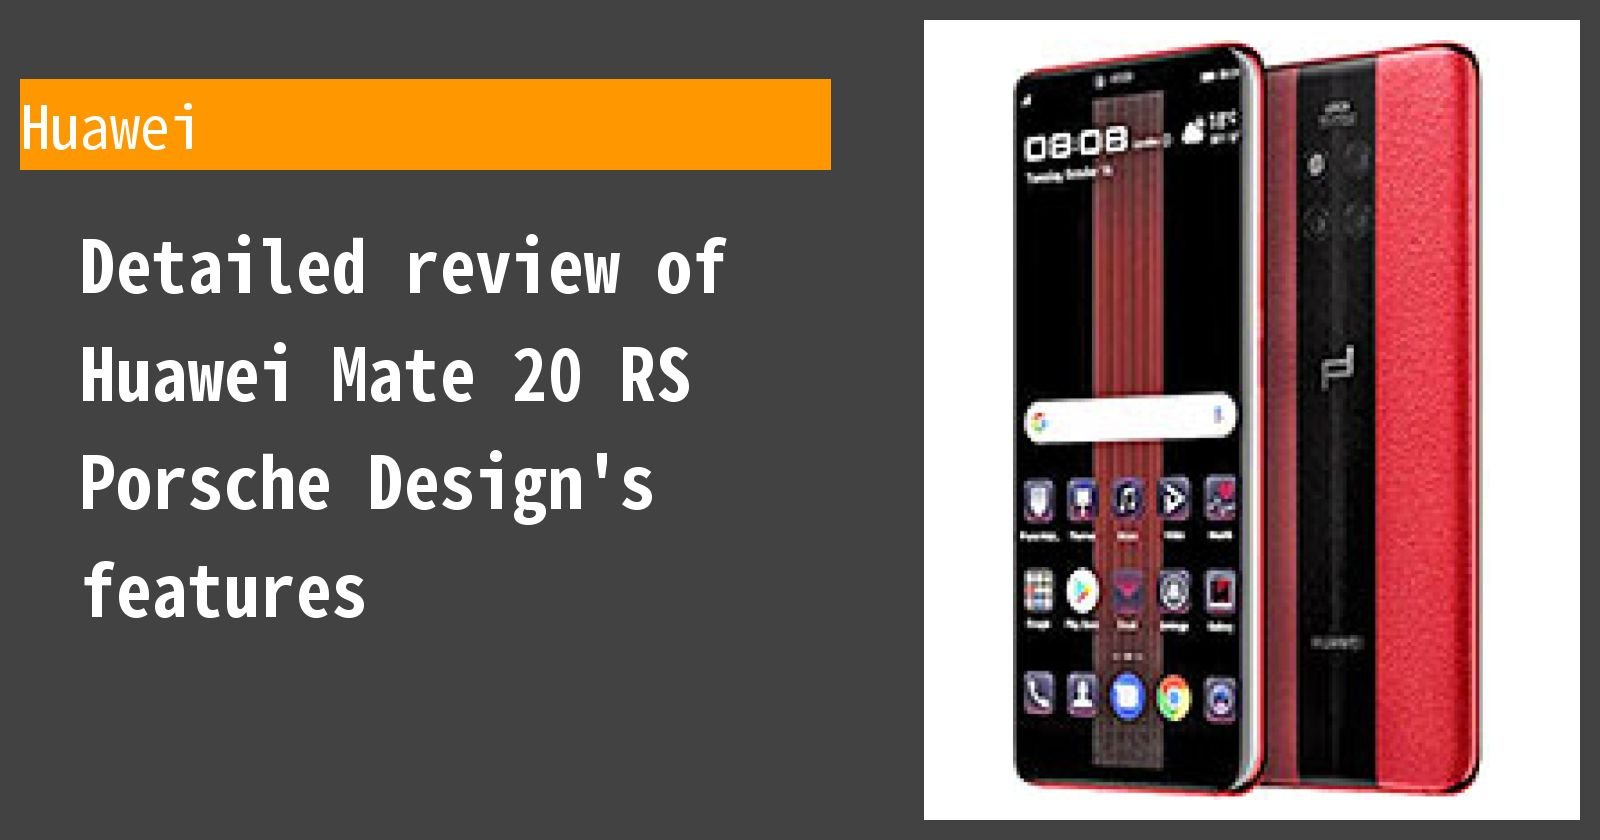 Detailed review of Huawei Mate 20 RS Porsche Design's features